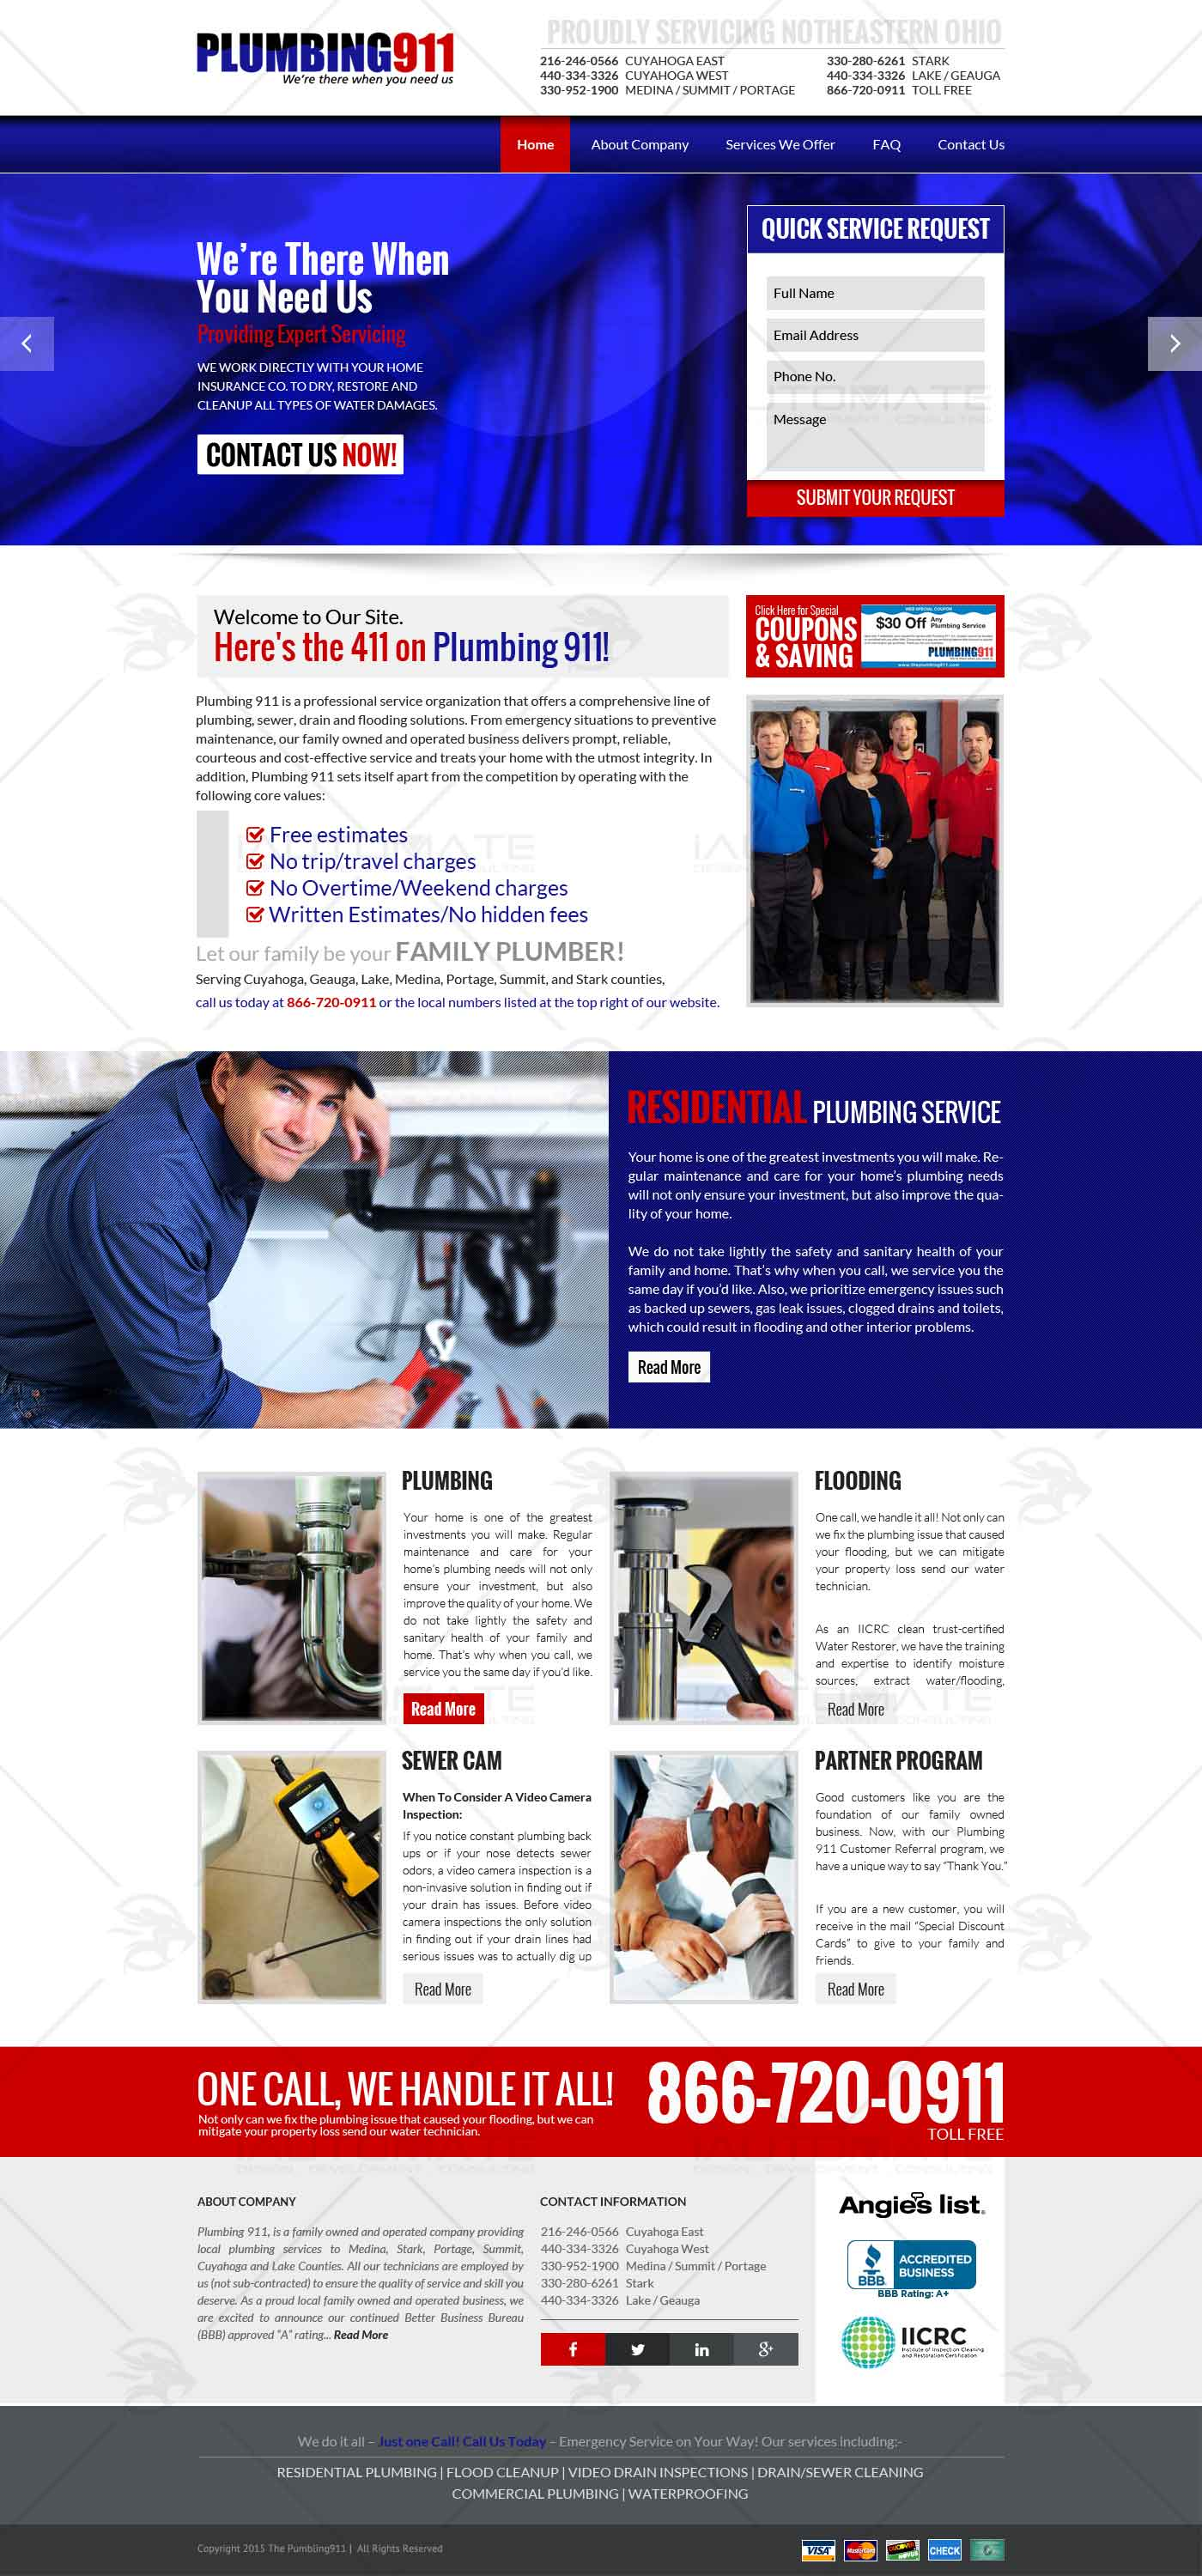 Plumbing Services web design and development | iAutomate